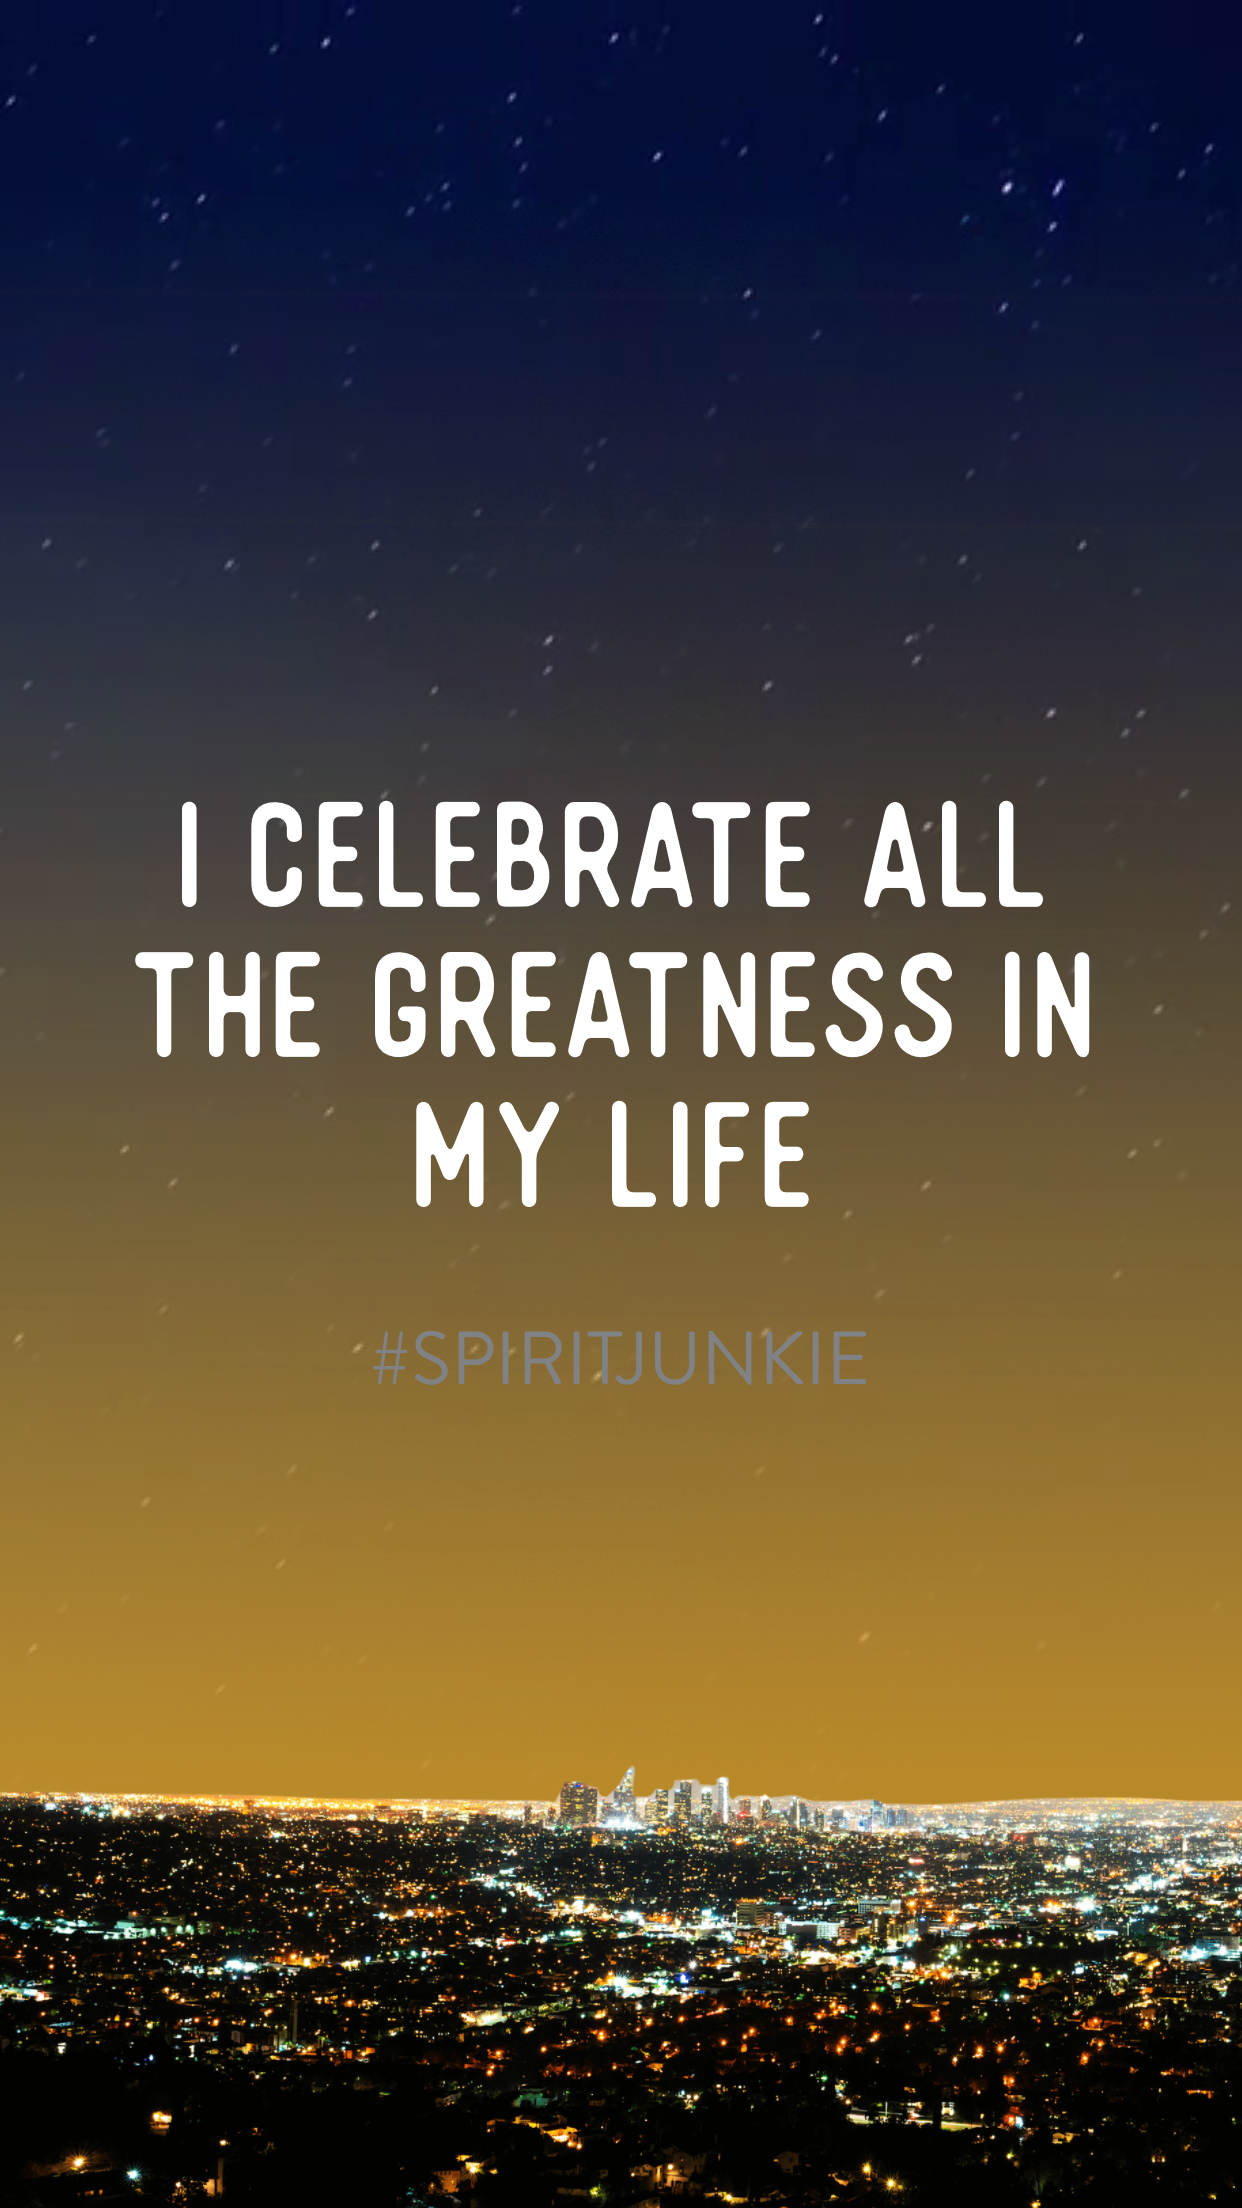 i celebrate all the greatness in my life | gabby bernstein spirit junkie app